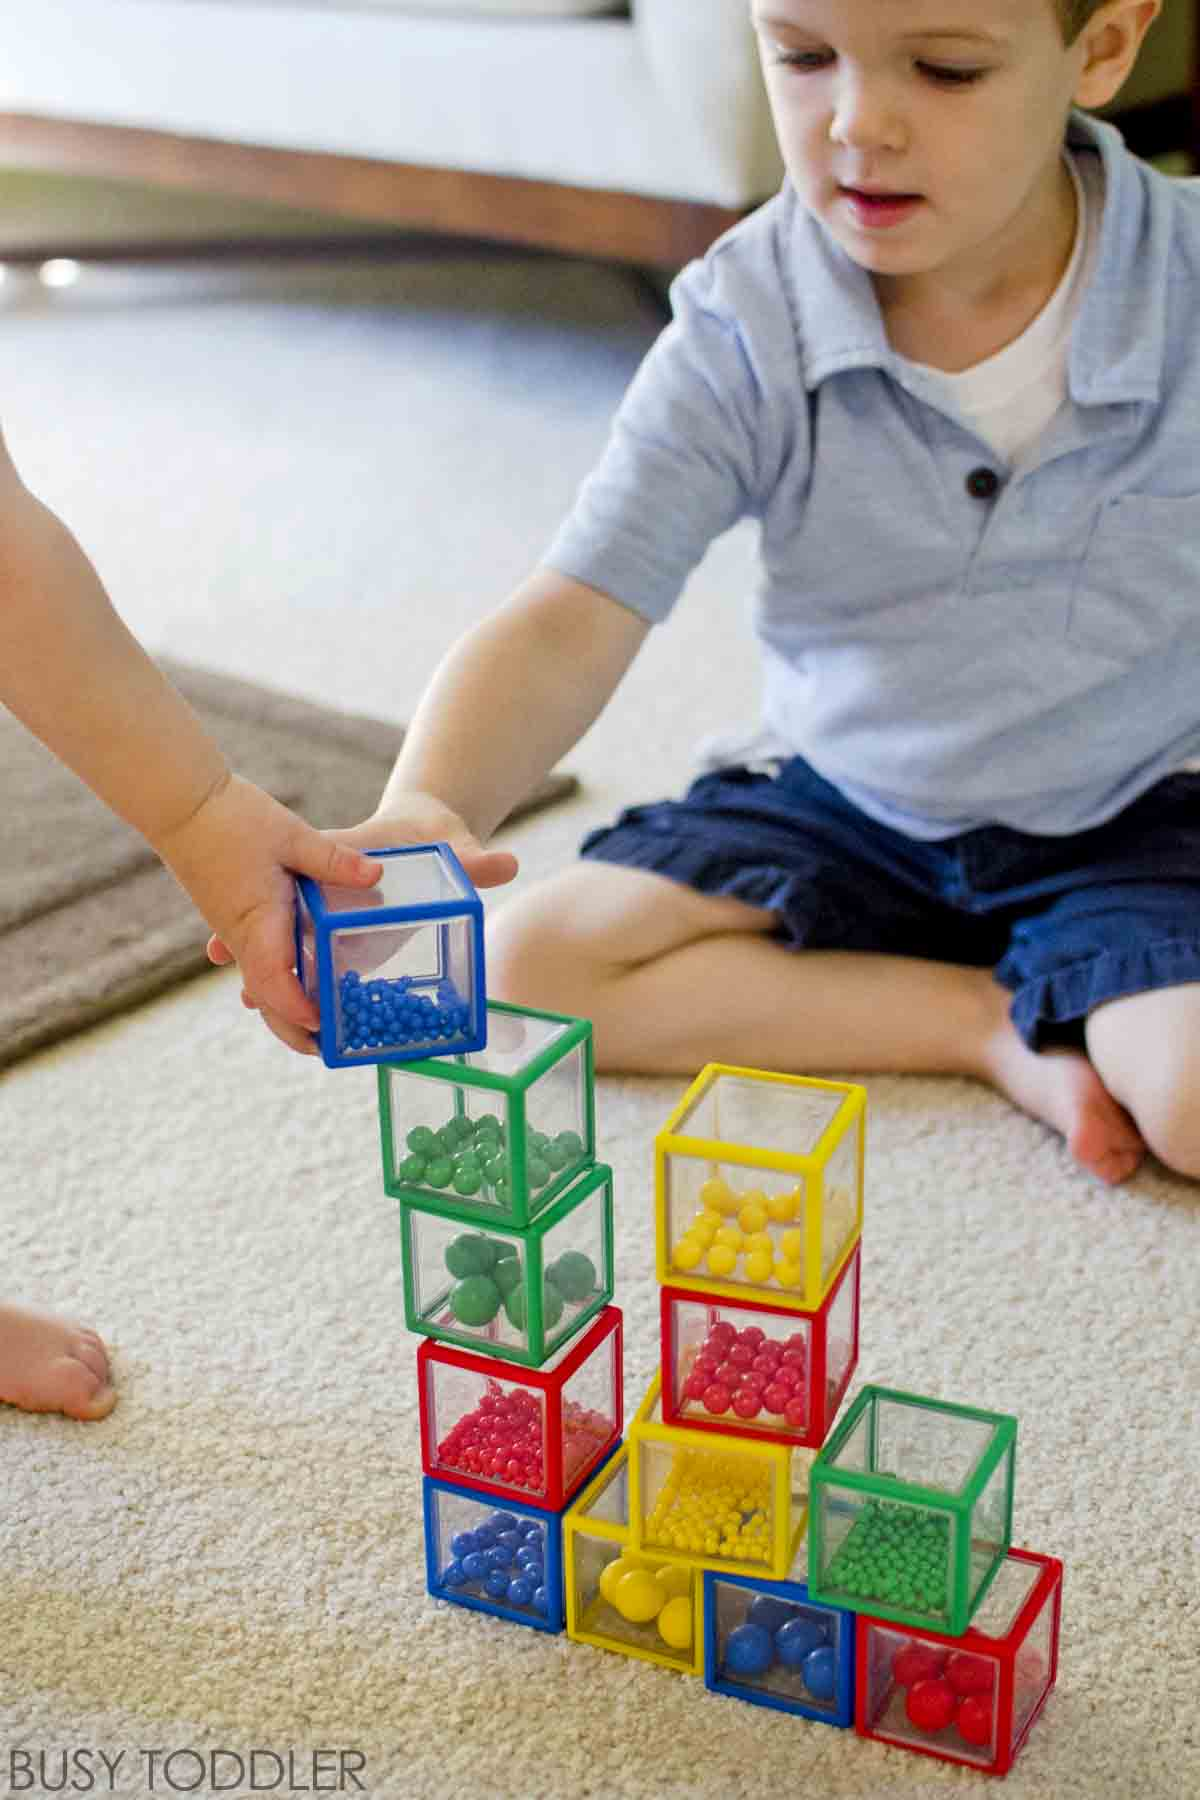 PLAYTIME LEARNING WITH SIBLINGS: Four fun ideas for sibling playtime; encouraging a sibling relationship; toddler activities